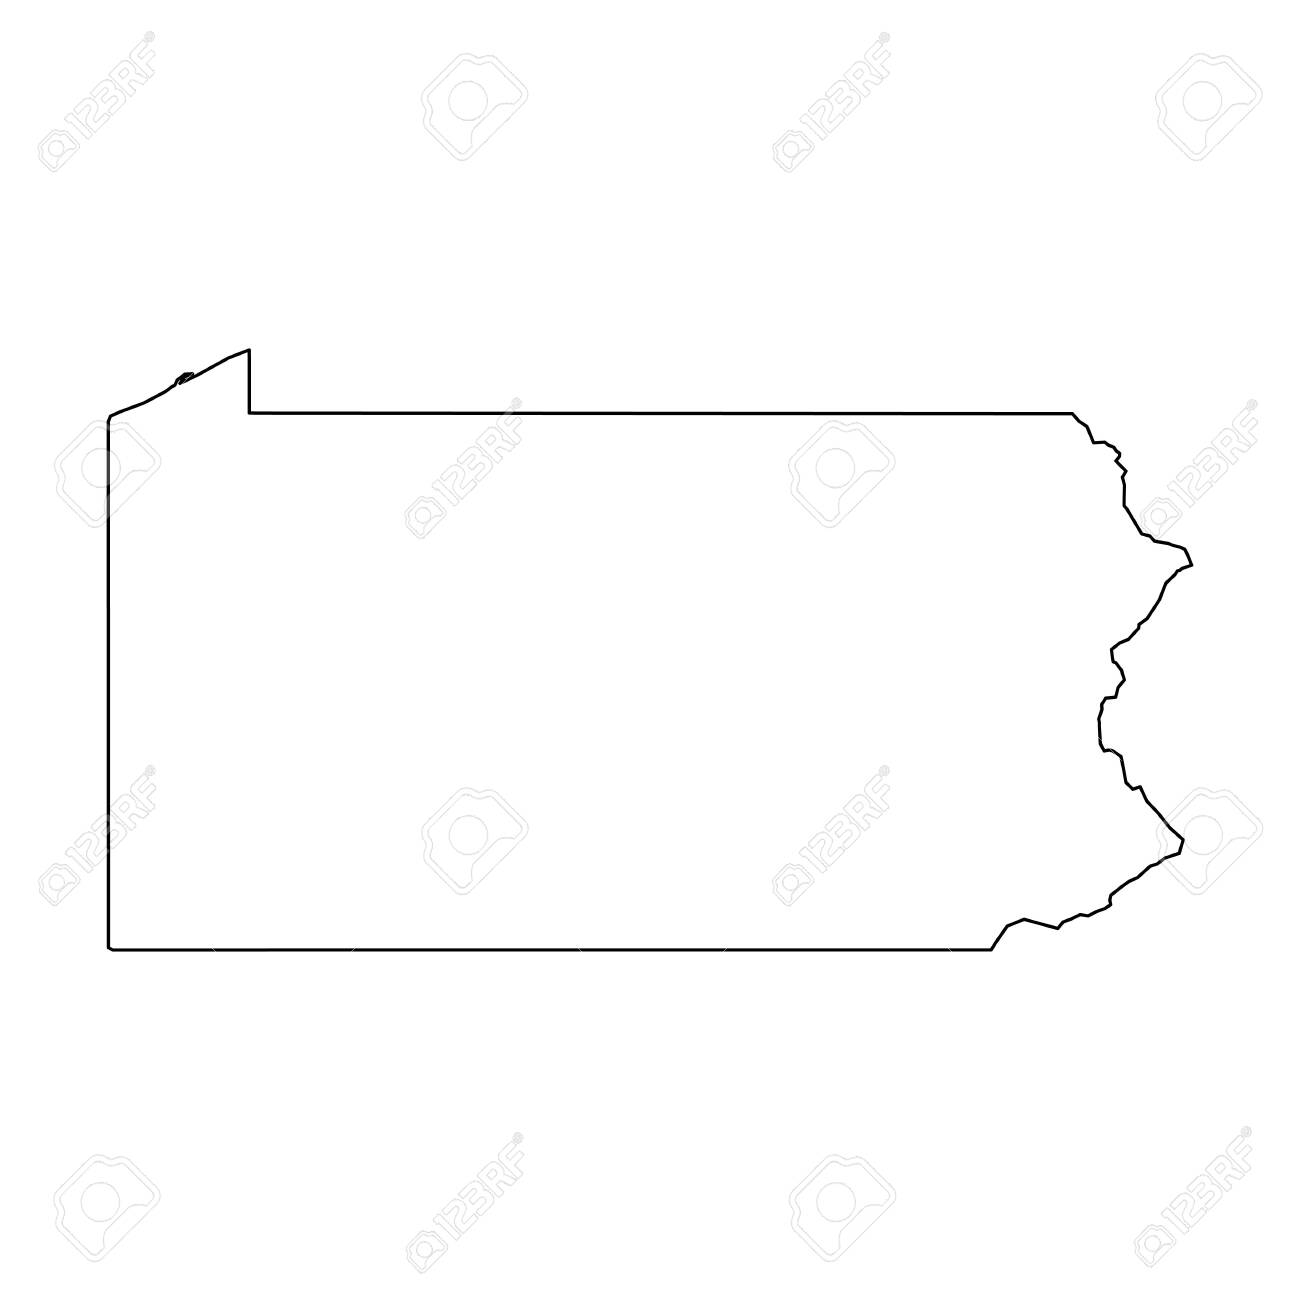 Pennsylvania, state of USA - solid black outline map of country.. on pennsylvania colors, pittsburgh map usa, ohio map usa, clemson university map usa, colorado map usa, mississippi map usa, pittsburgh pennsylvania usa, iowa map usa, pennsylvania on map, wisconsin map usa, oregon map usa, new york on map of usa, pennsylvania statehood, nebraska map usa, oklahoma map usa, indiana map usa, minnesota map usa, pennsylvania caves map locations, connecticut map usa, michigan map usa,